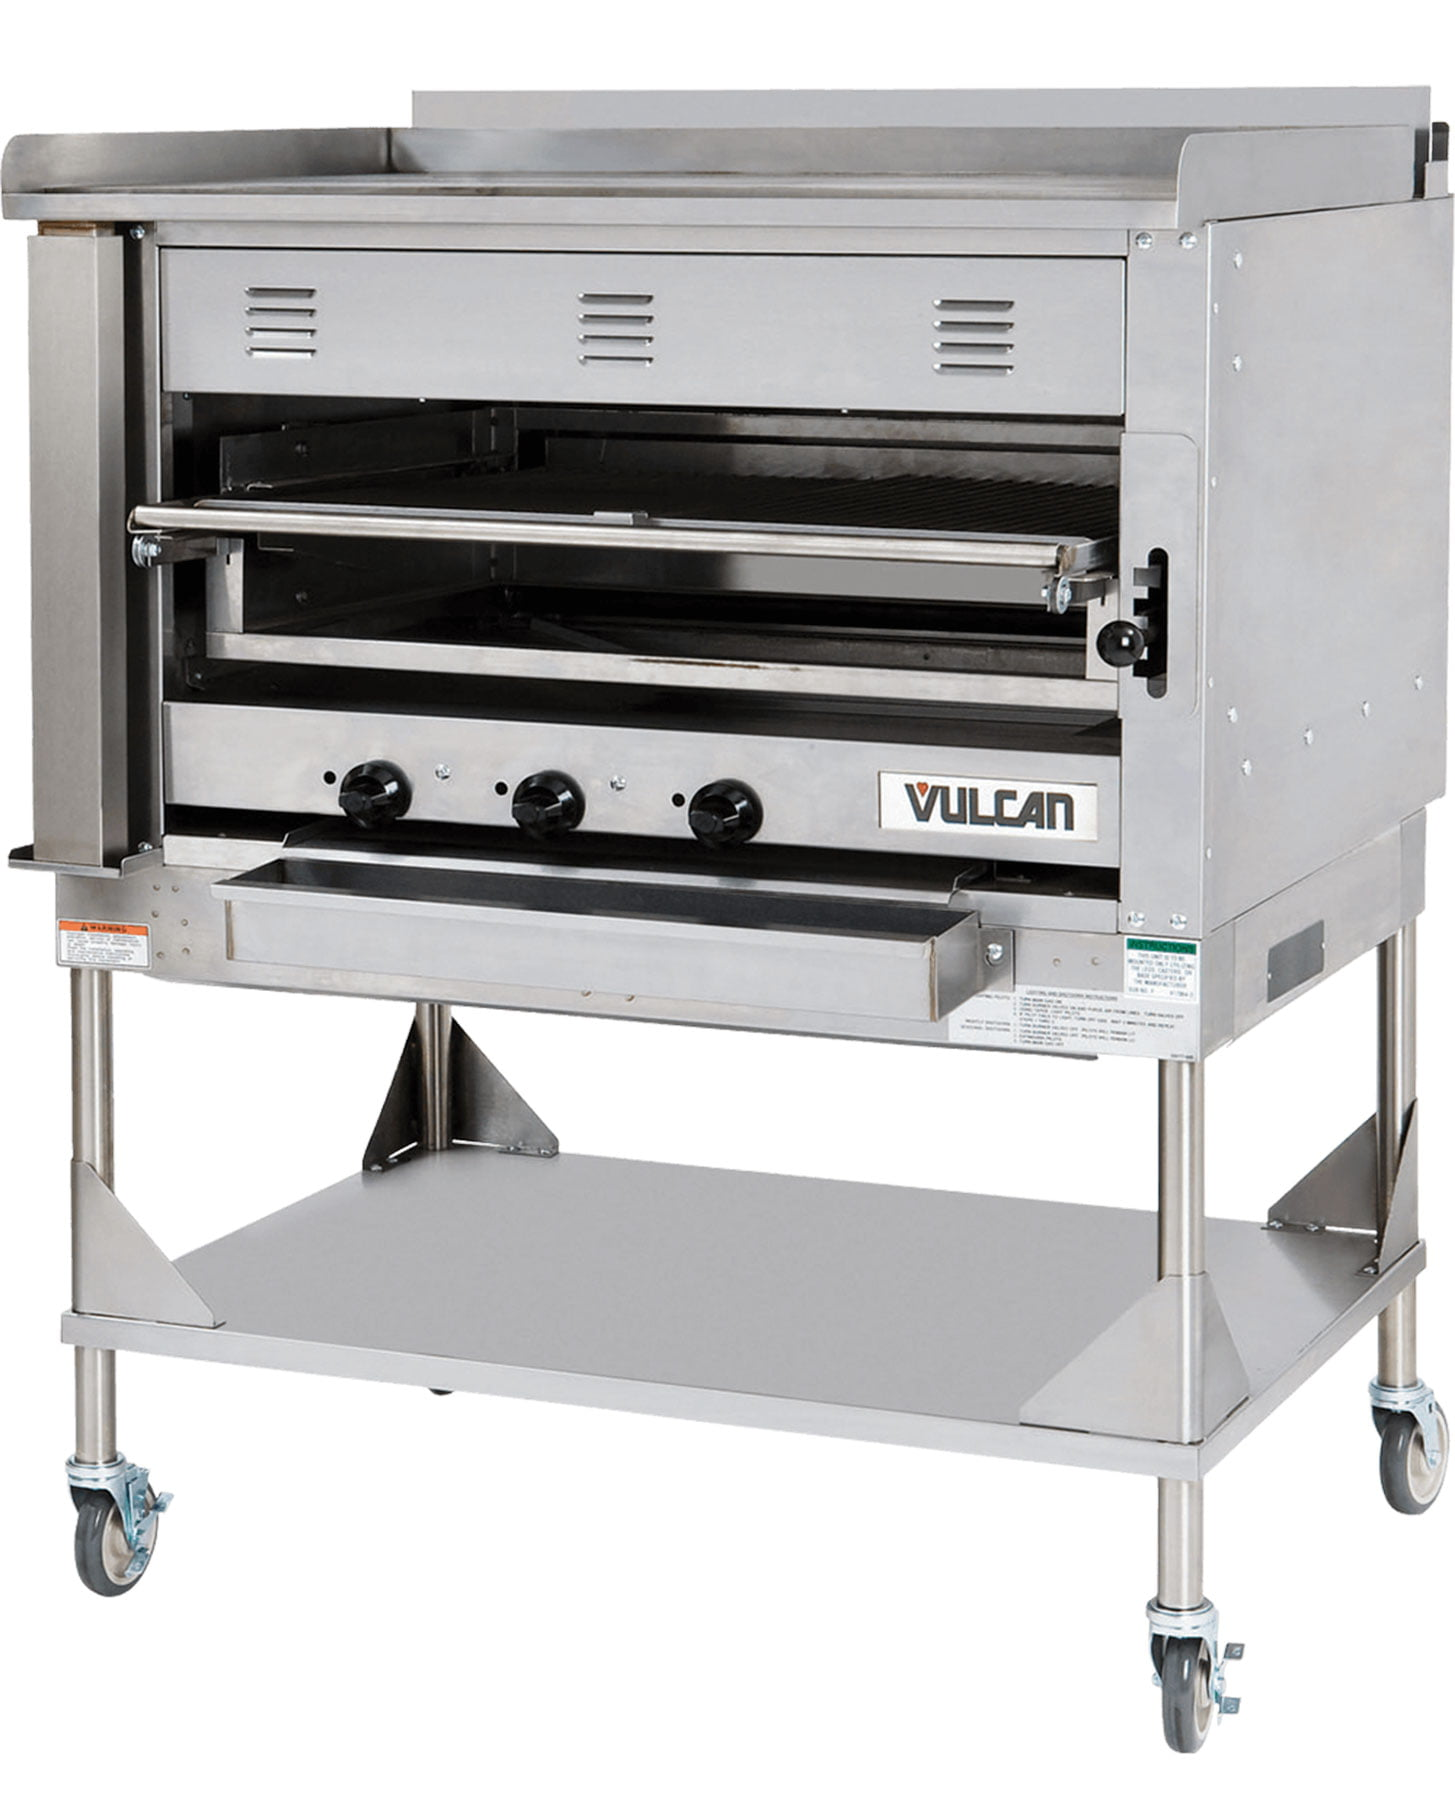 Chophouse Broiler Oven